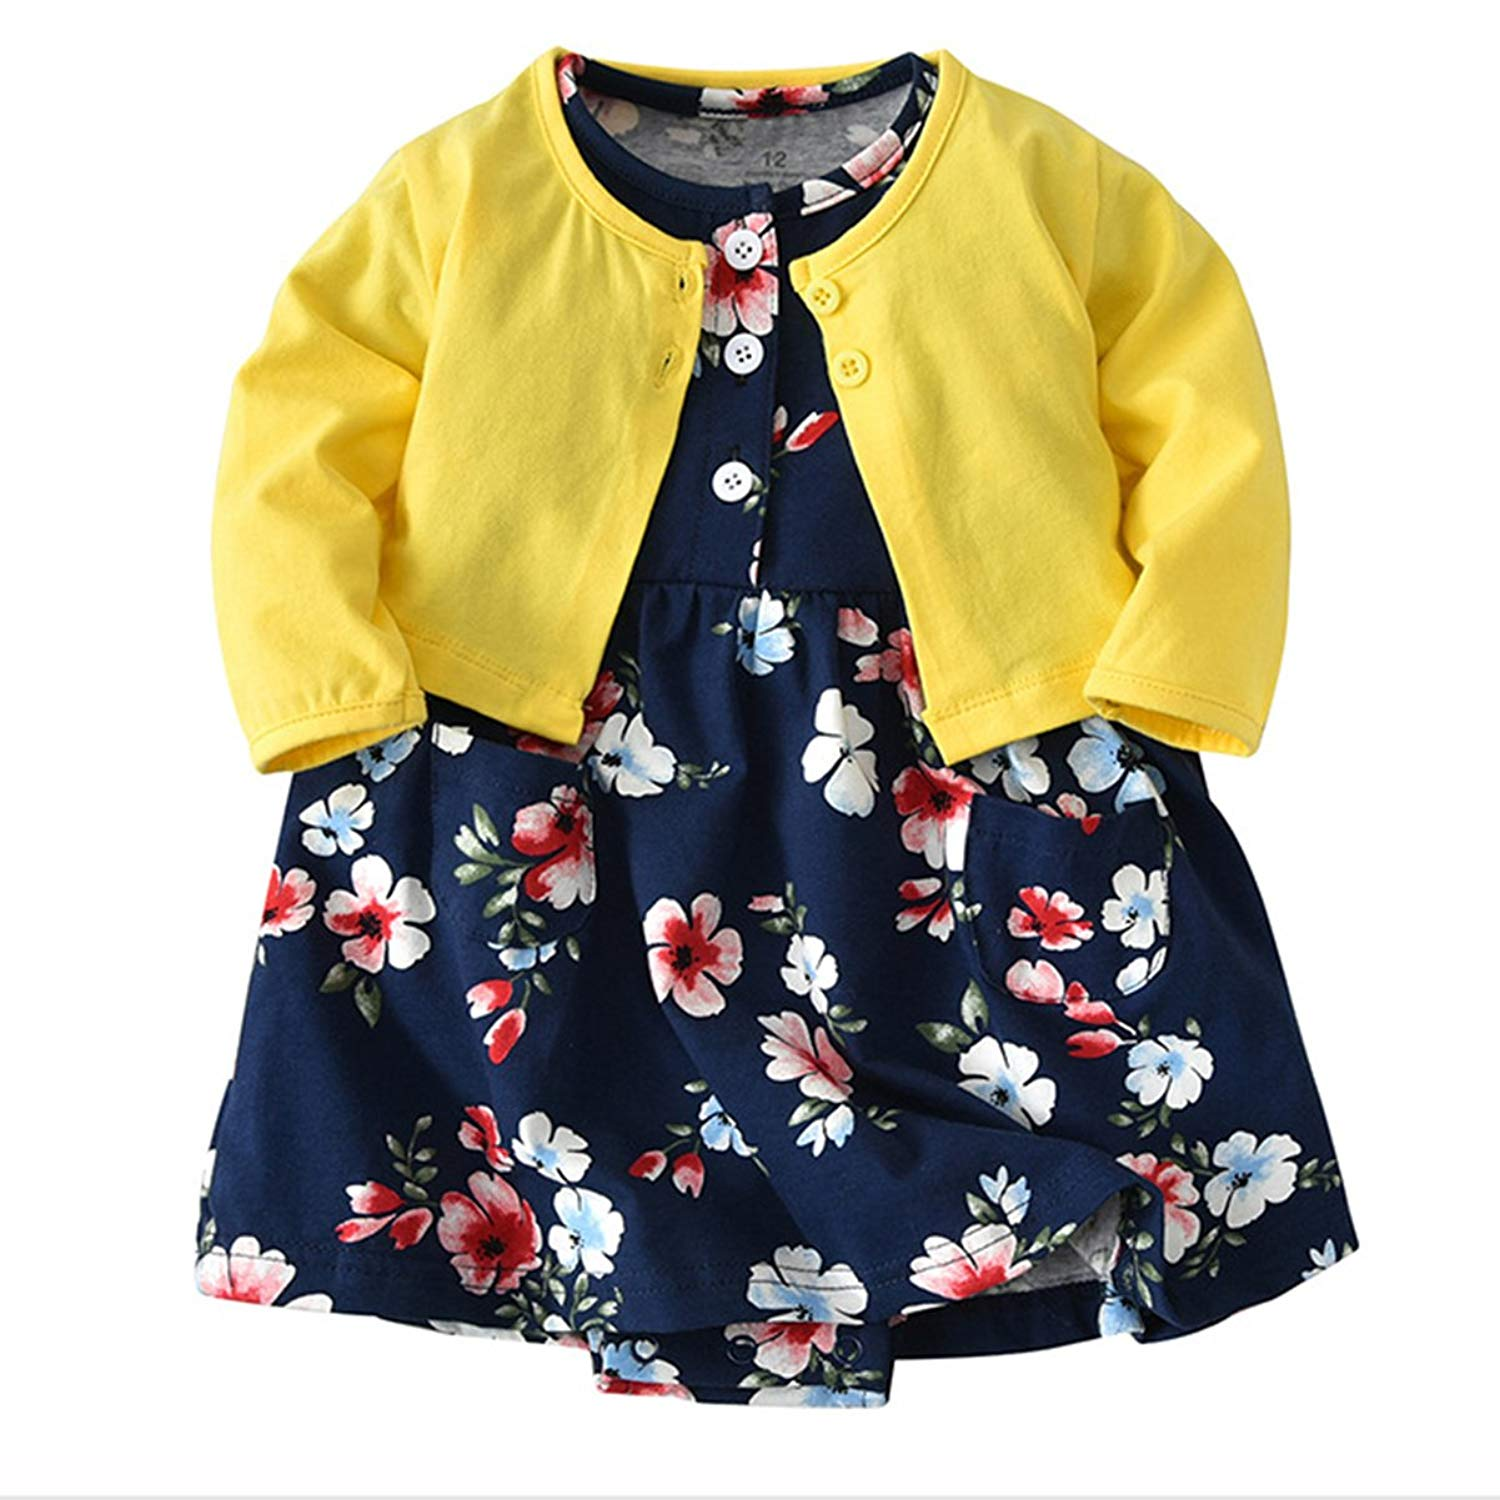 c1ea17cae9e4 Get Quotations · JIANLANPTT Cute 2pcs Baby Girls Dress Set Floral Toddler  Romper Dresses + Coat